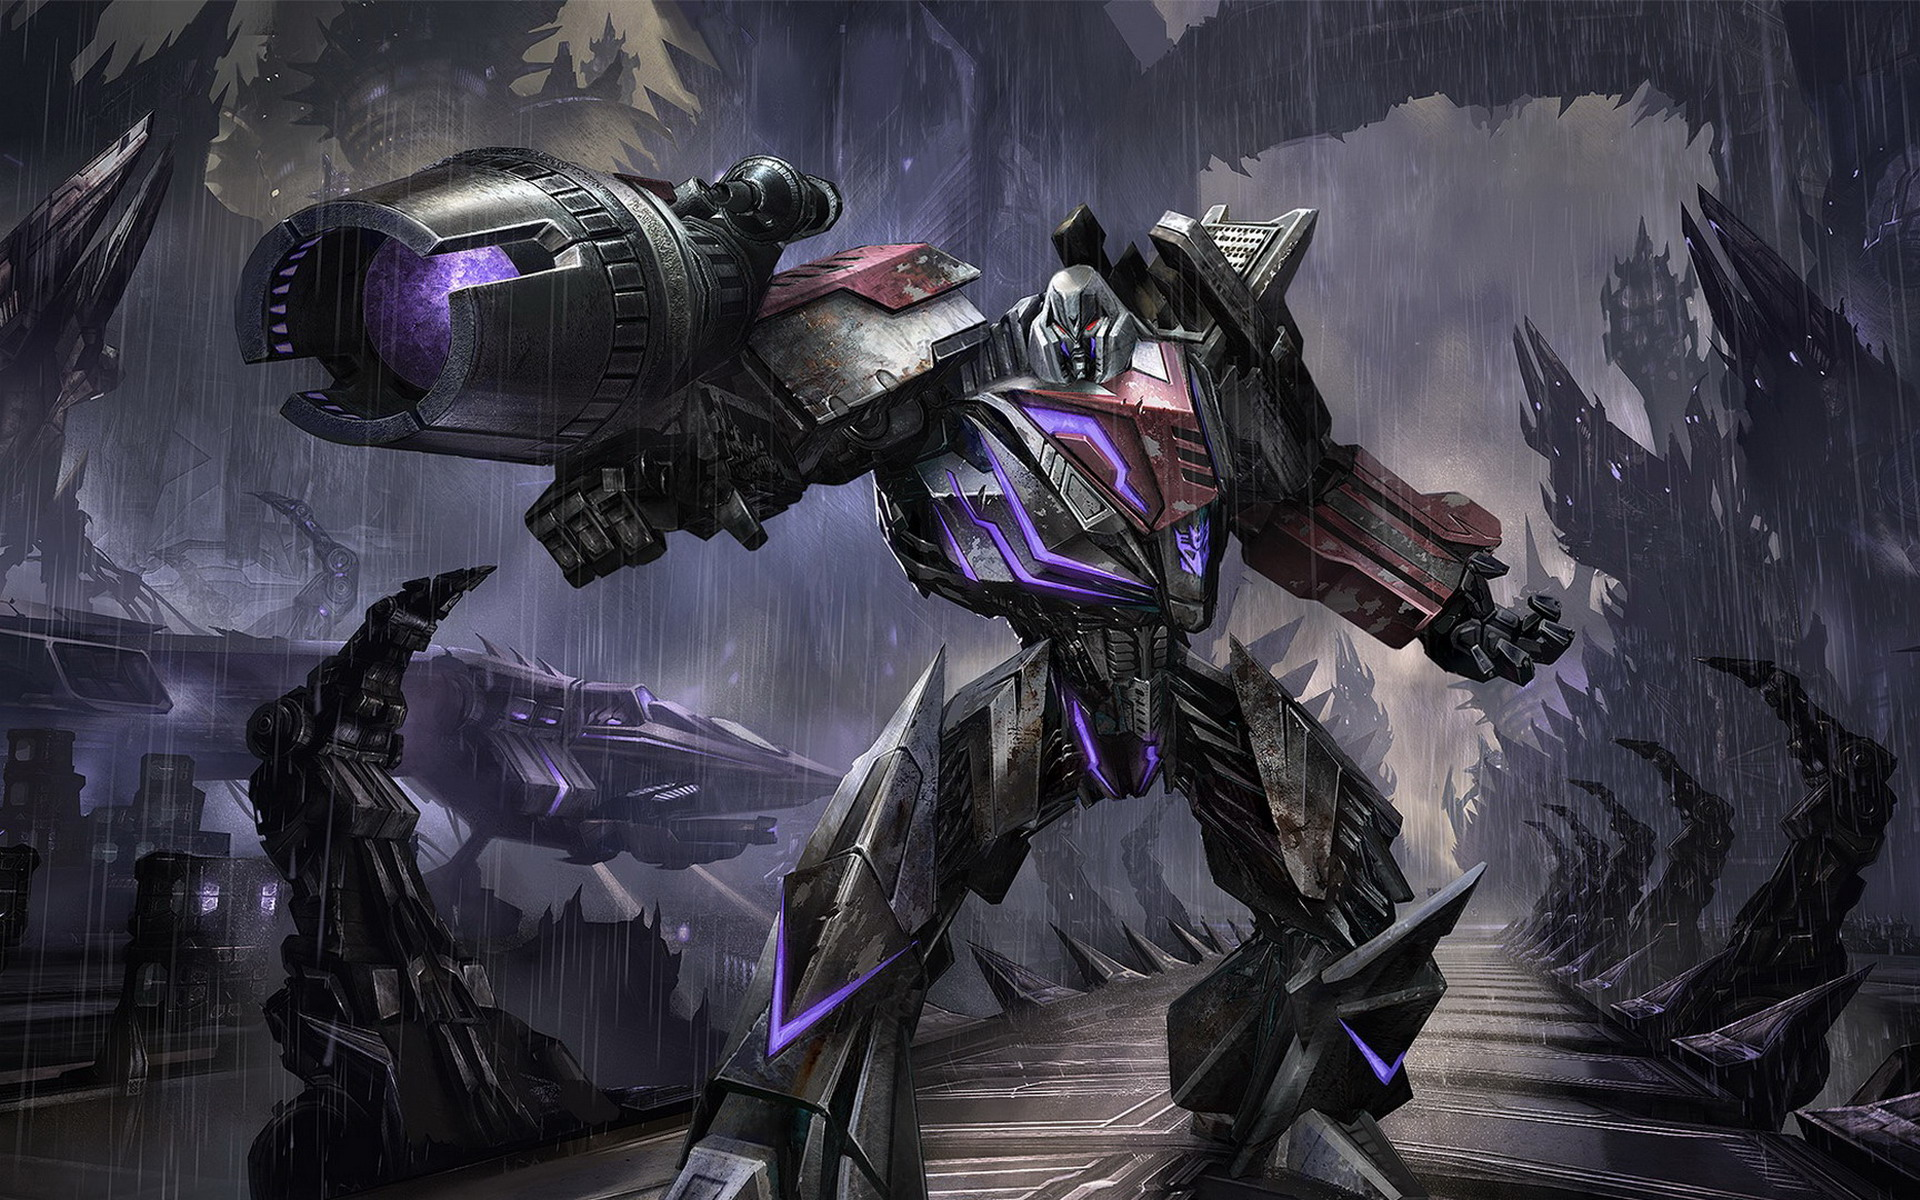 transformers war for cybertron game wallpapers | wallpapers hd